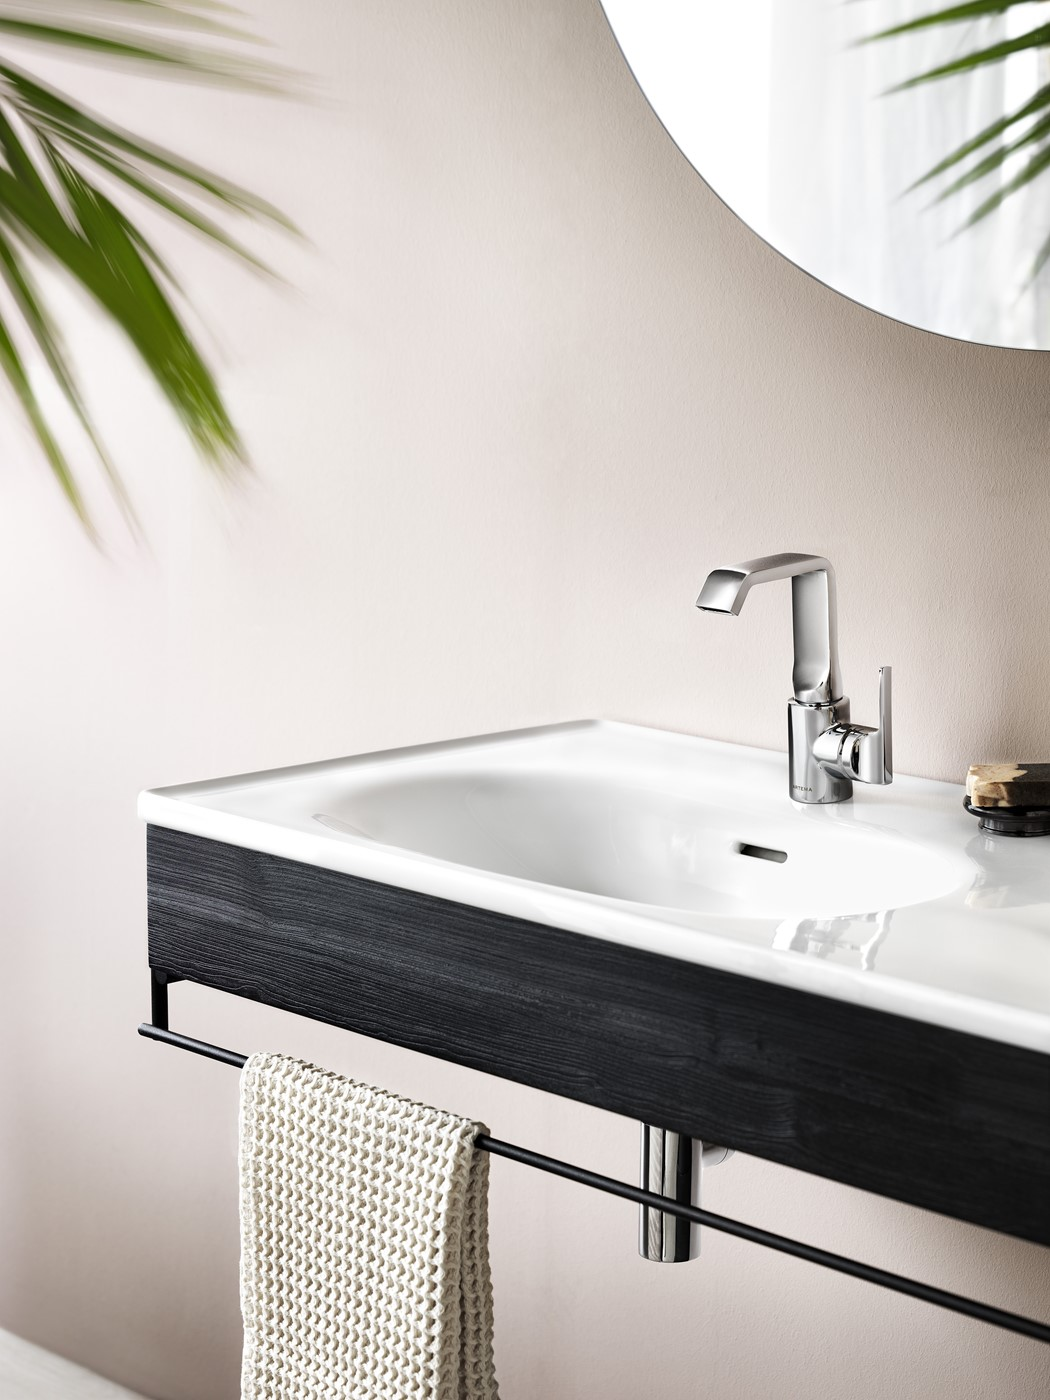 Equal Bathroom Suite range from Vitra